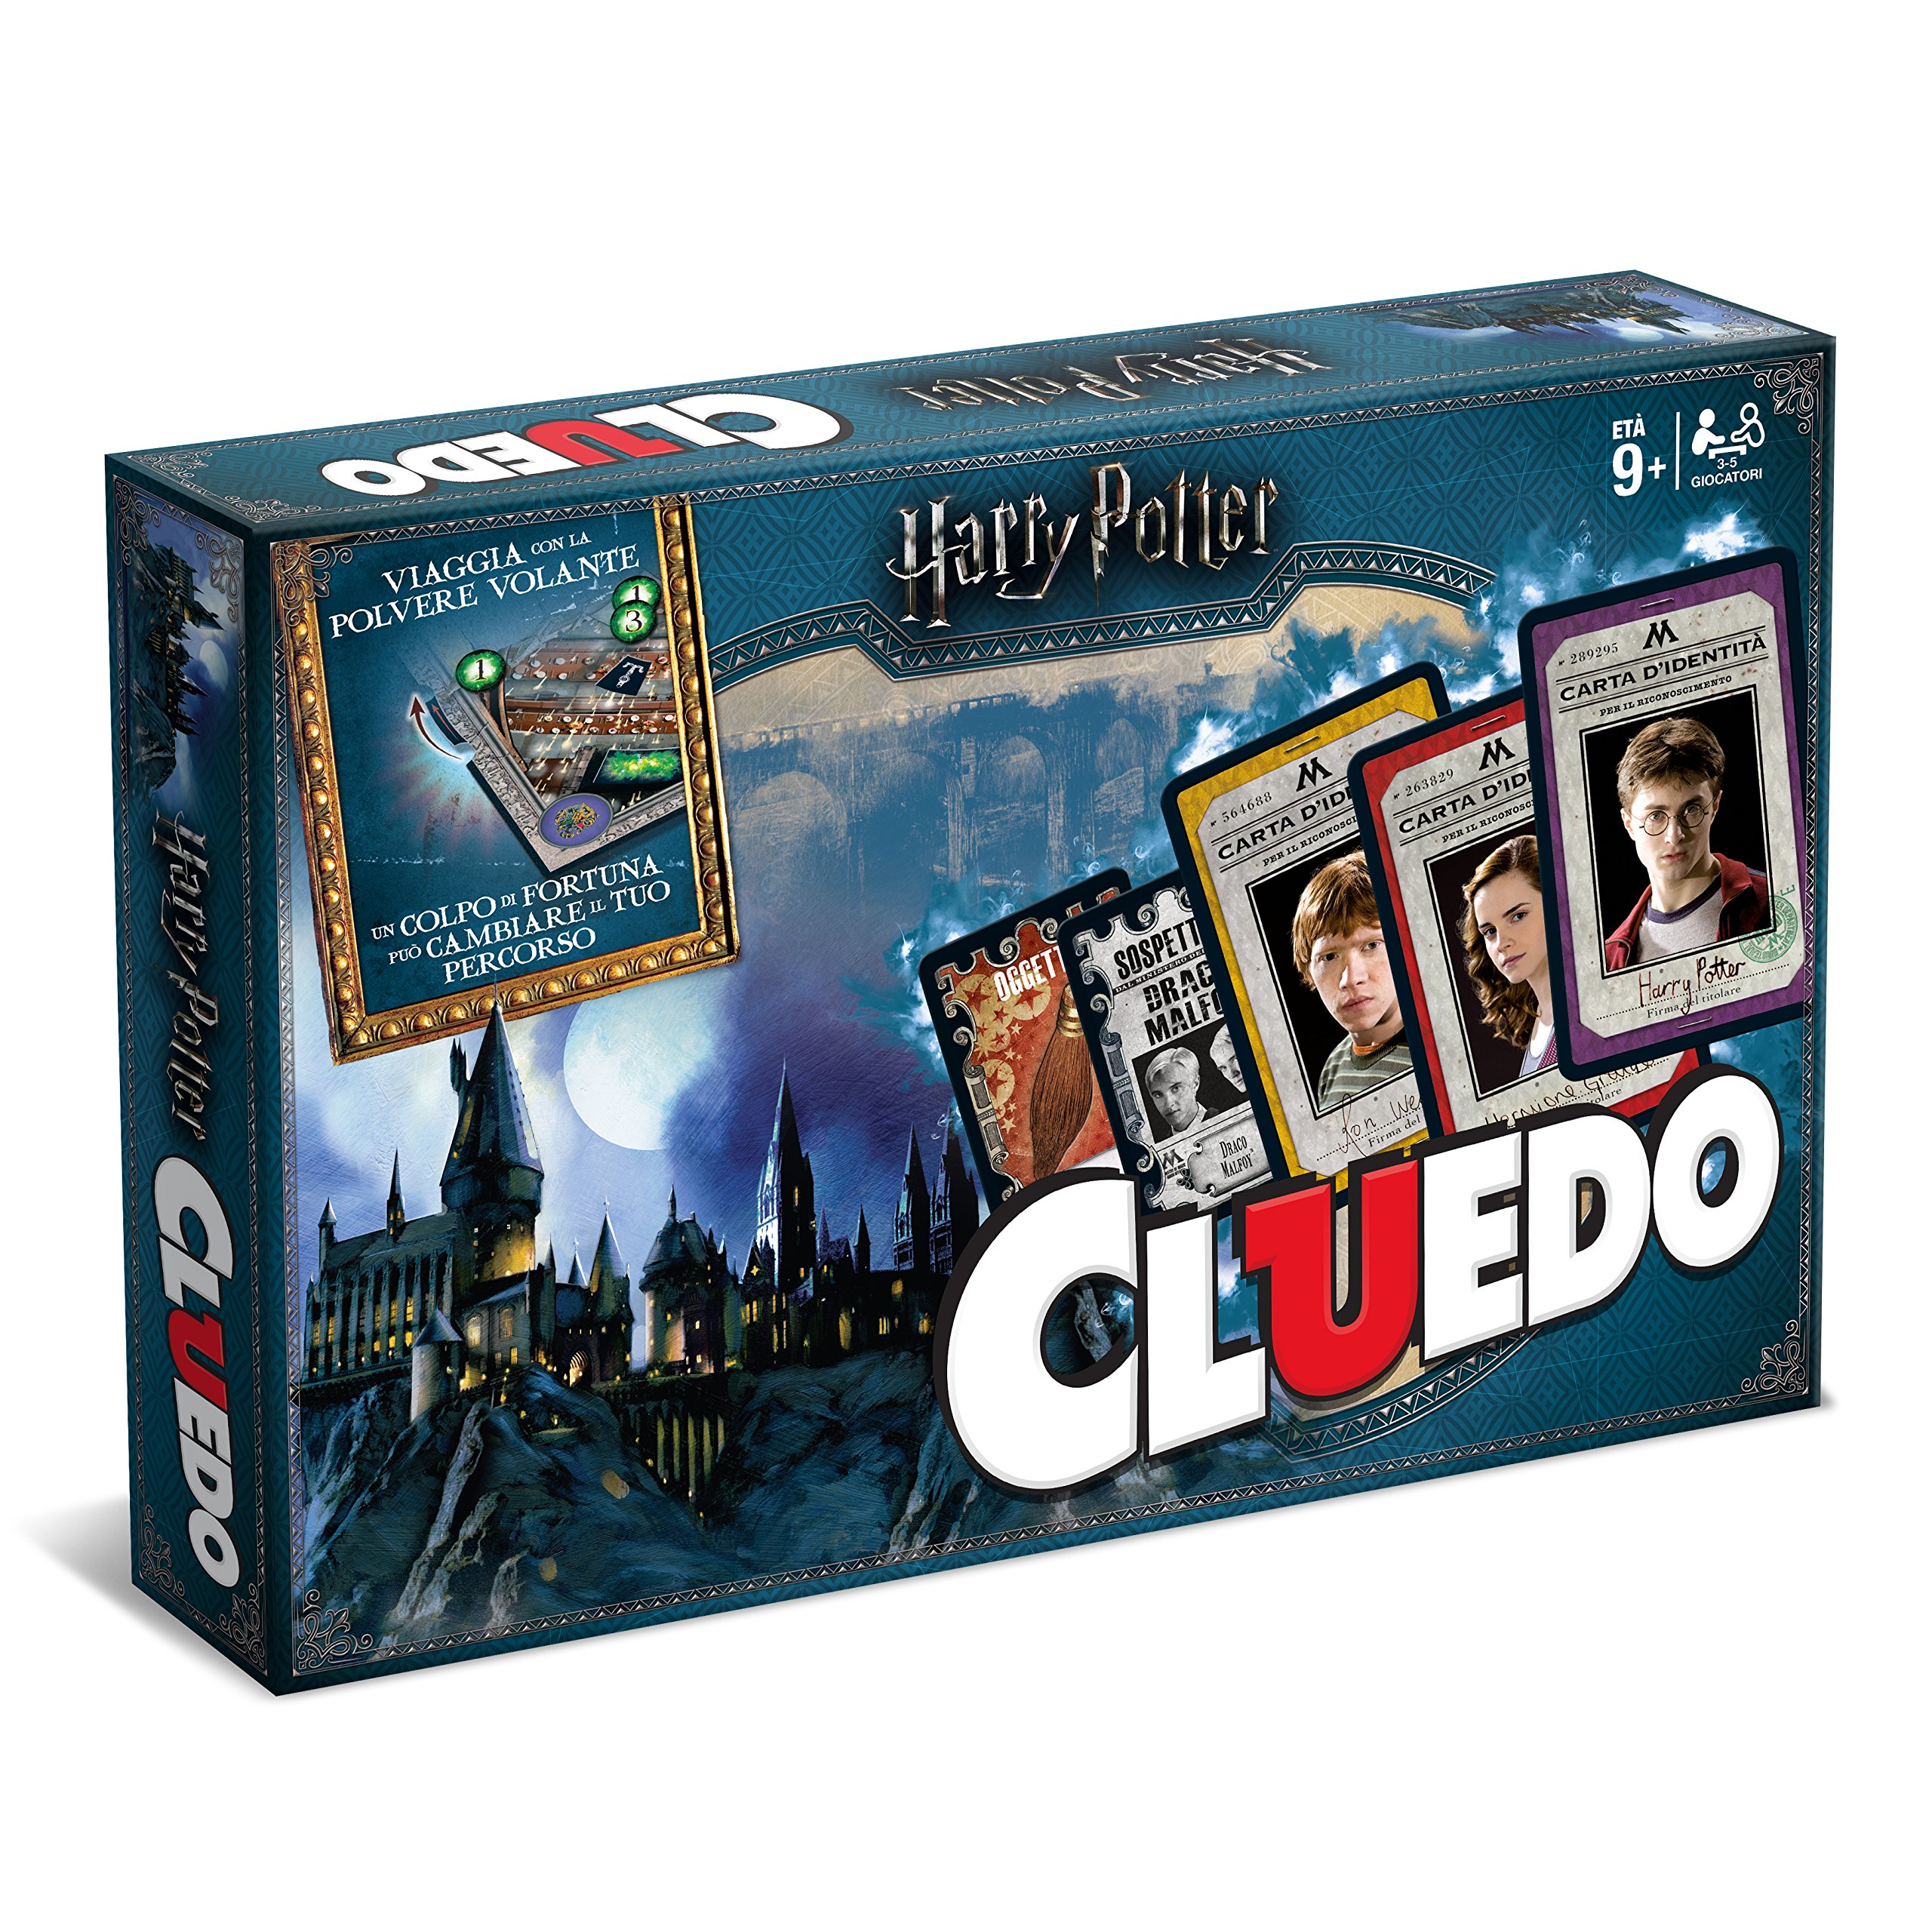 Winning Moves - Board Game - Cluedo Harry Potter Collectable Edition, 02400, Italian by Winning Moves Games